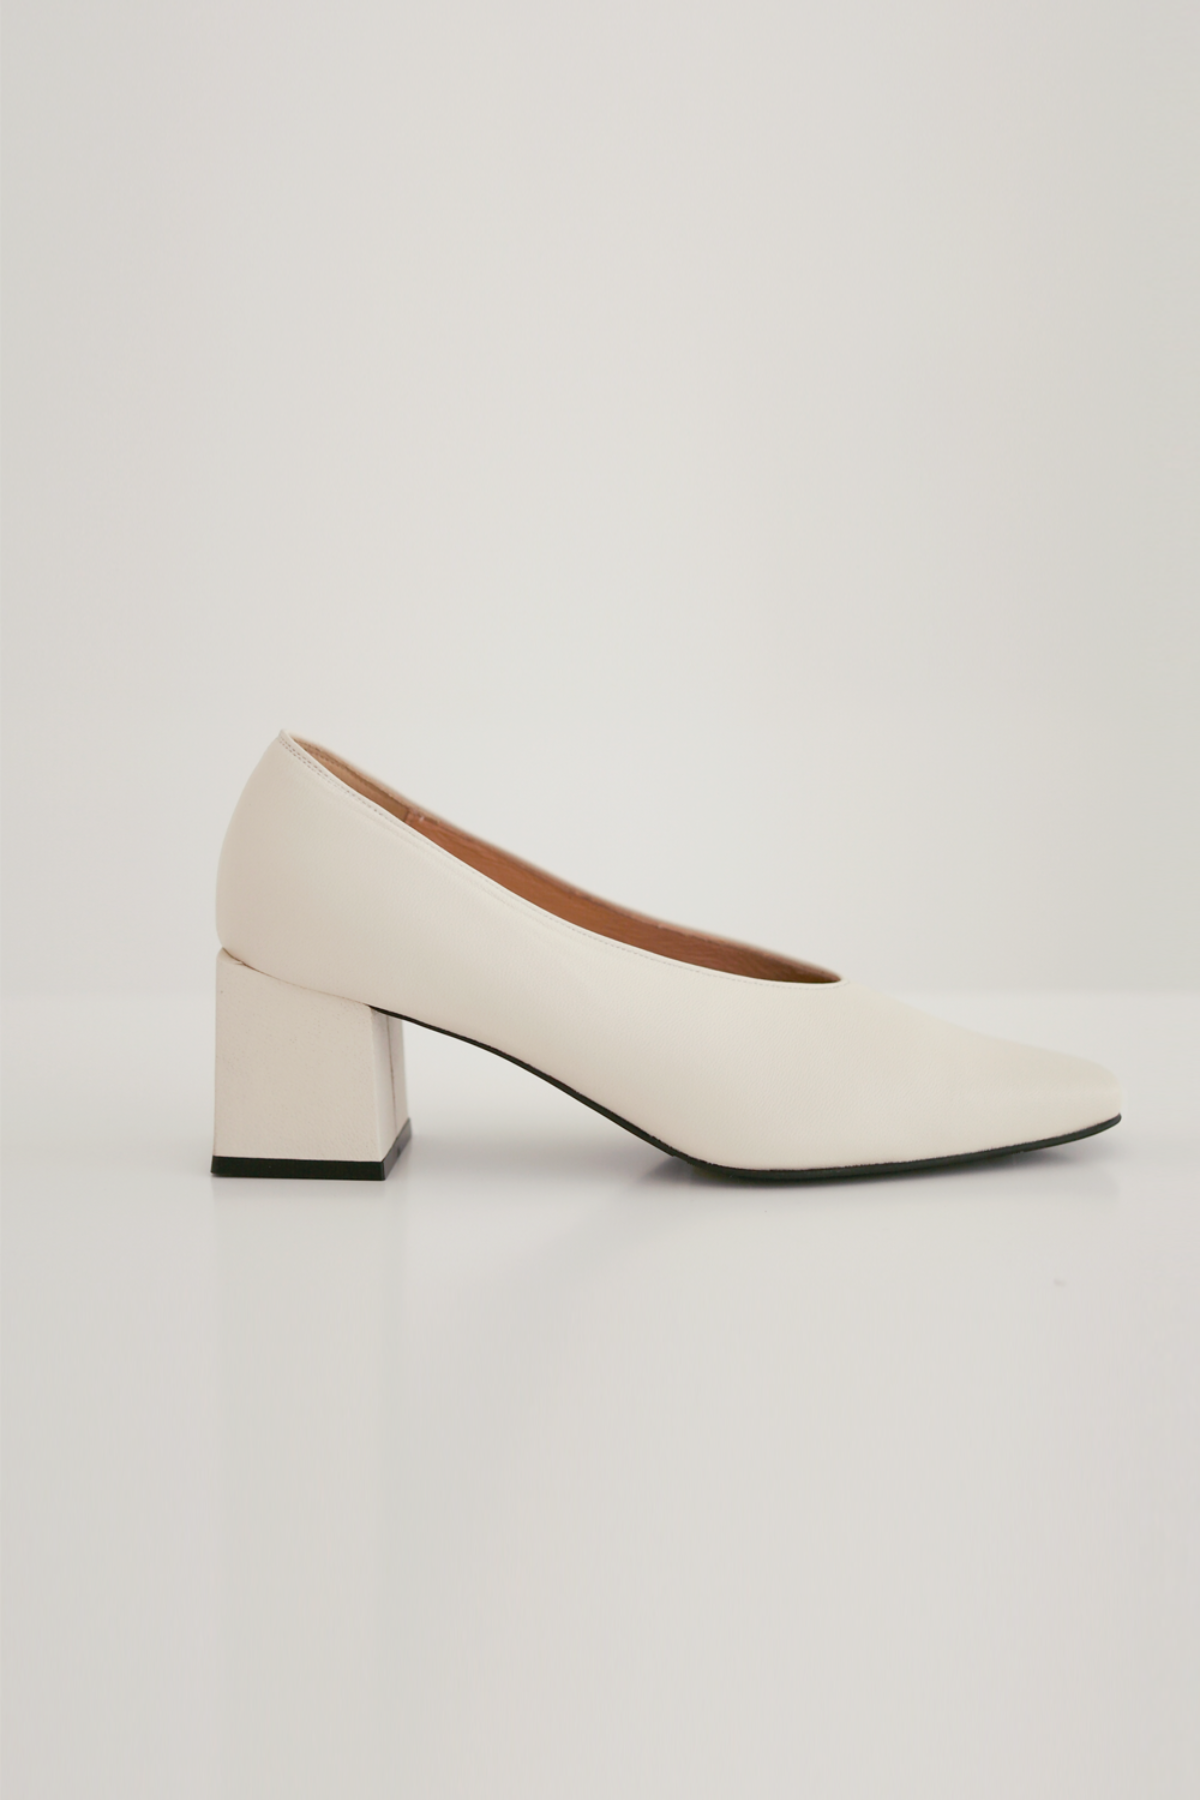 anthese venica square middle heel, ivory